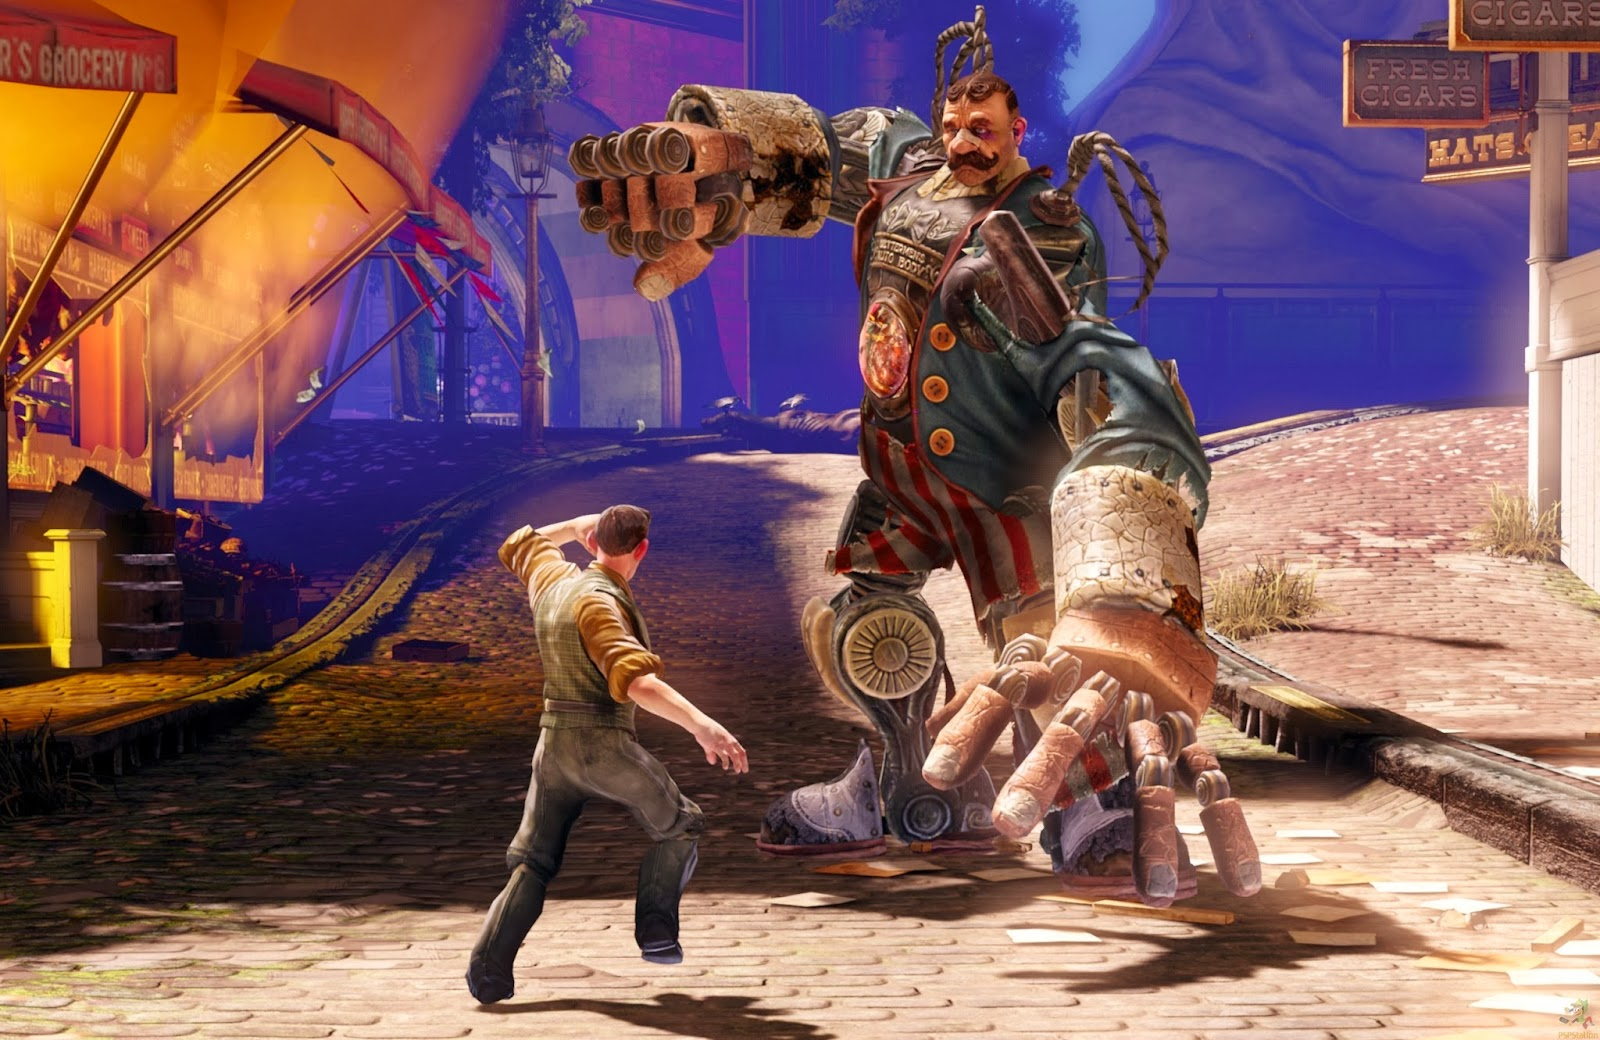 http://www.pspstation.org/portal/wp-content/uploads/2012/12/Bioshock-Infinite-interview-3.jpg